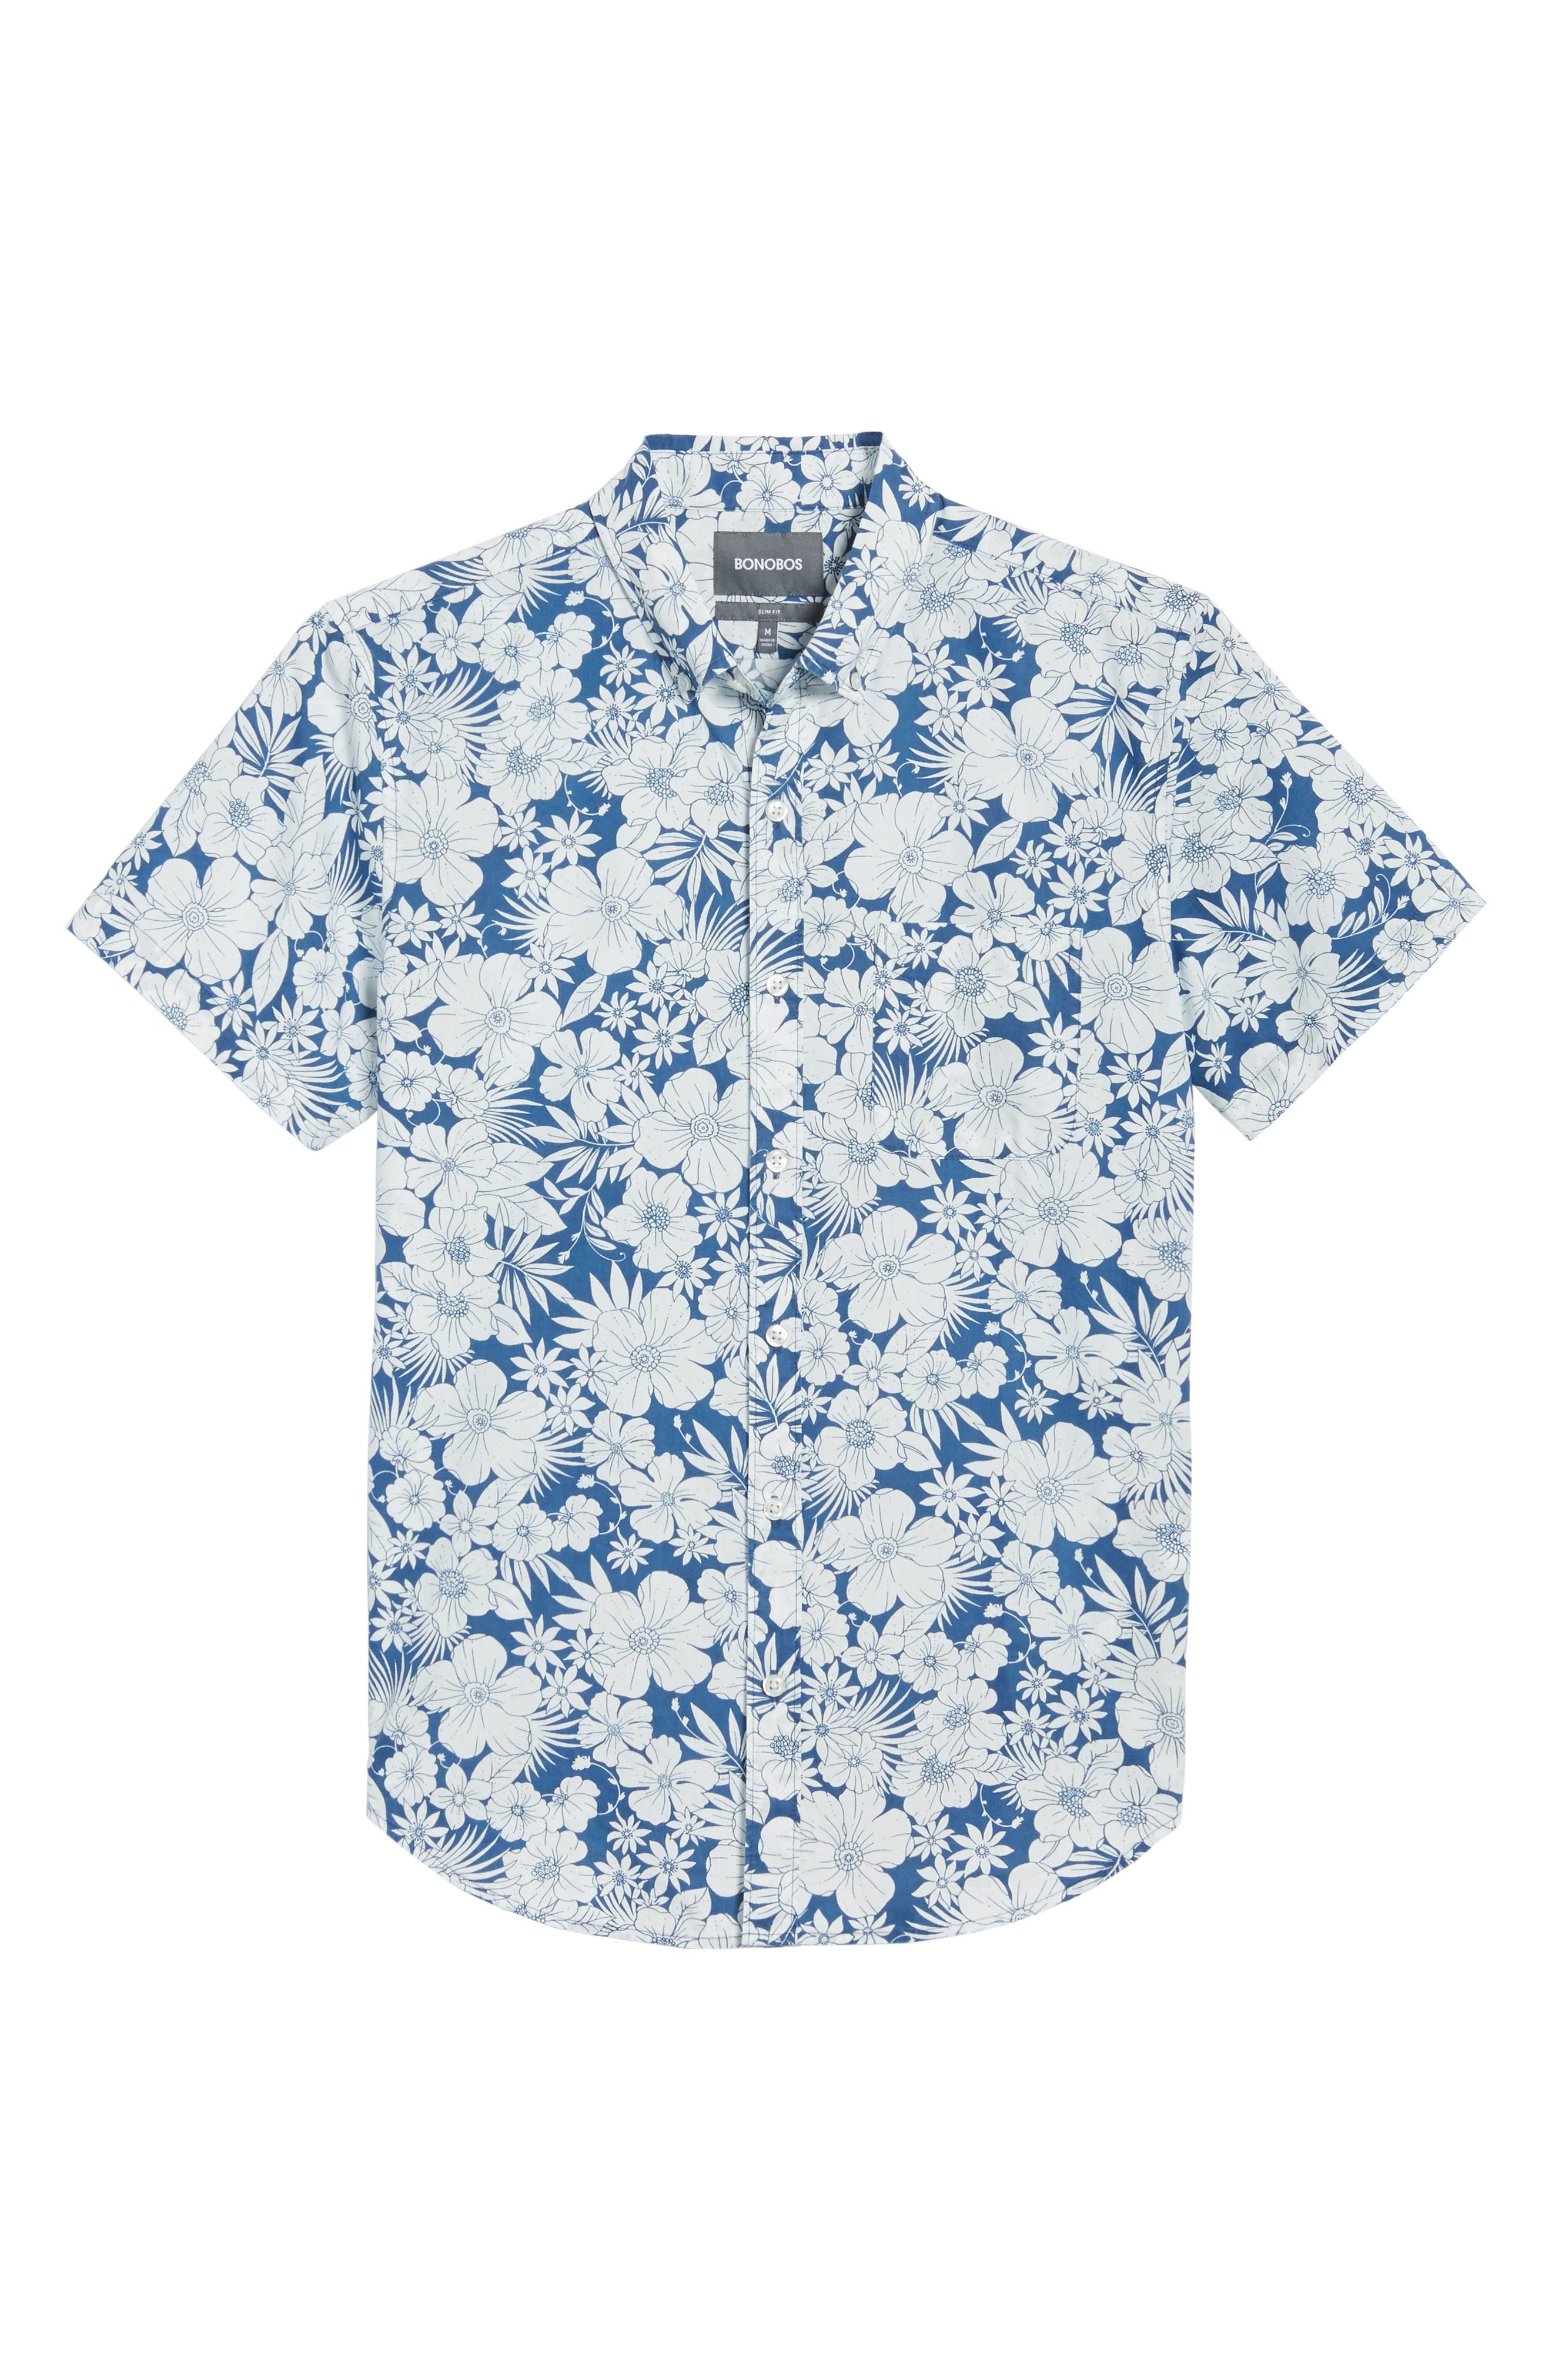 Slim Fit Print Short Sleeve Sport Shirt,                             Alternate thumbnail 6, color,                             Harland Floral - Maritime Blue